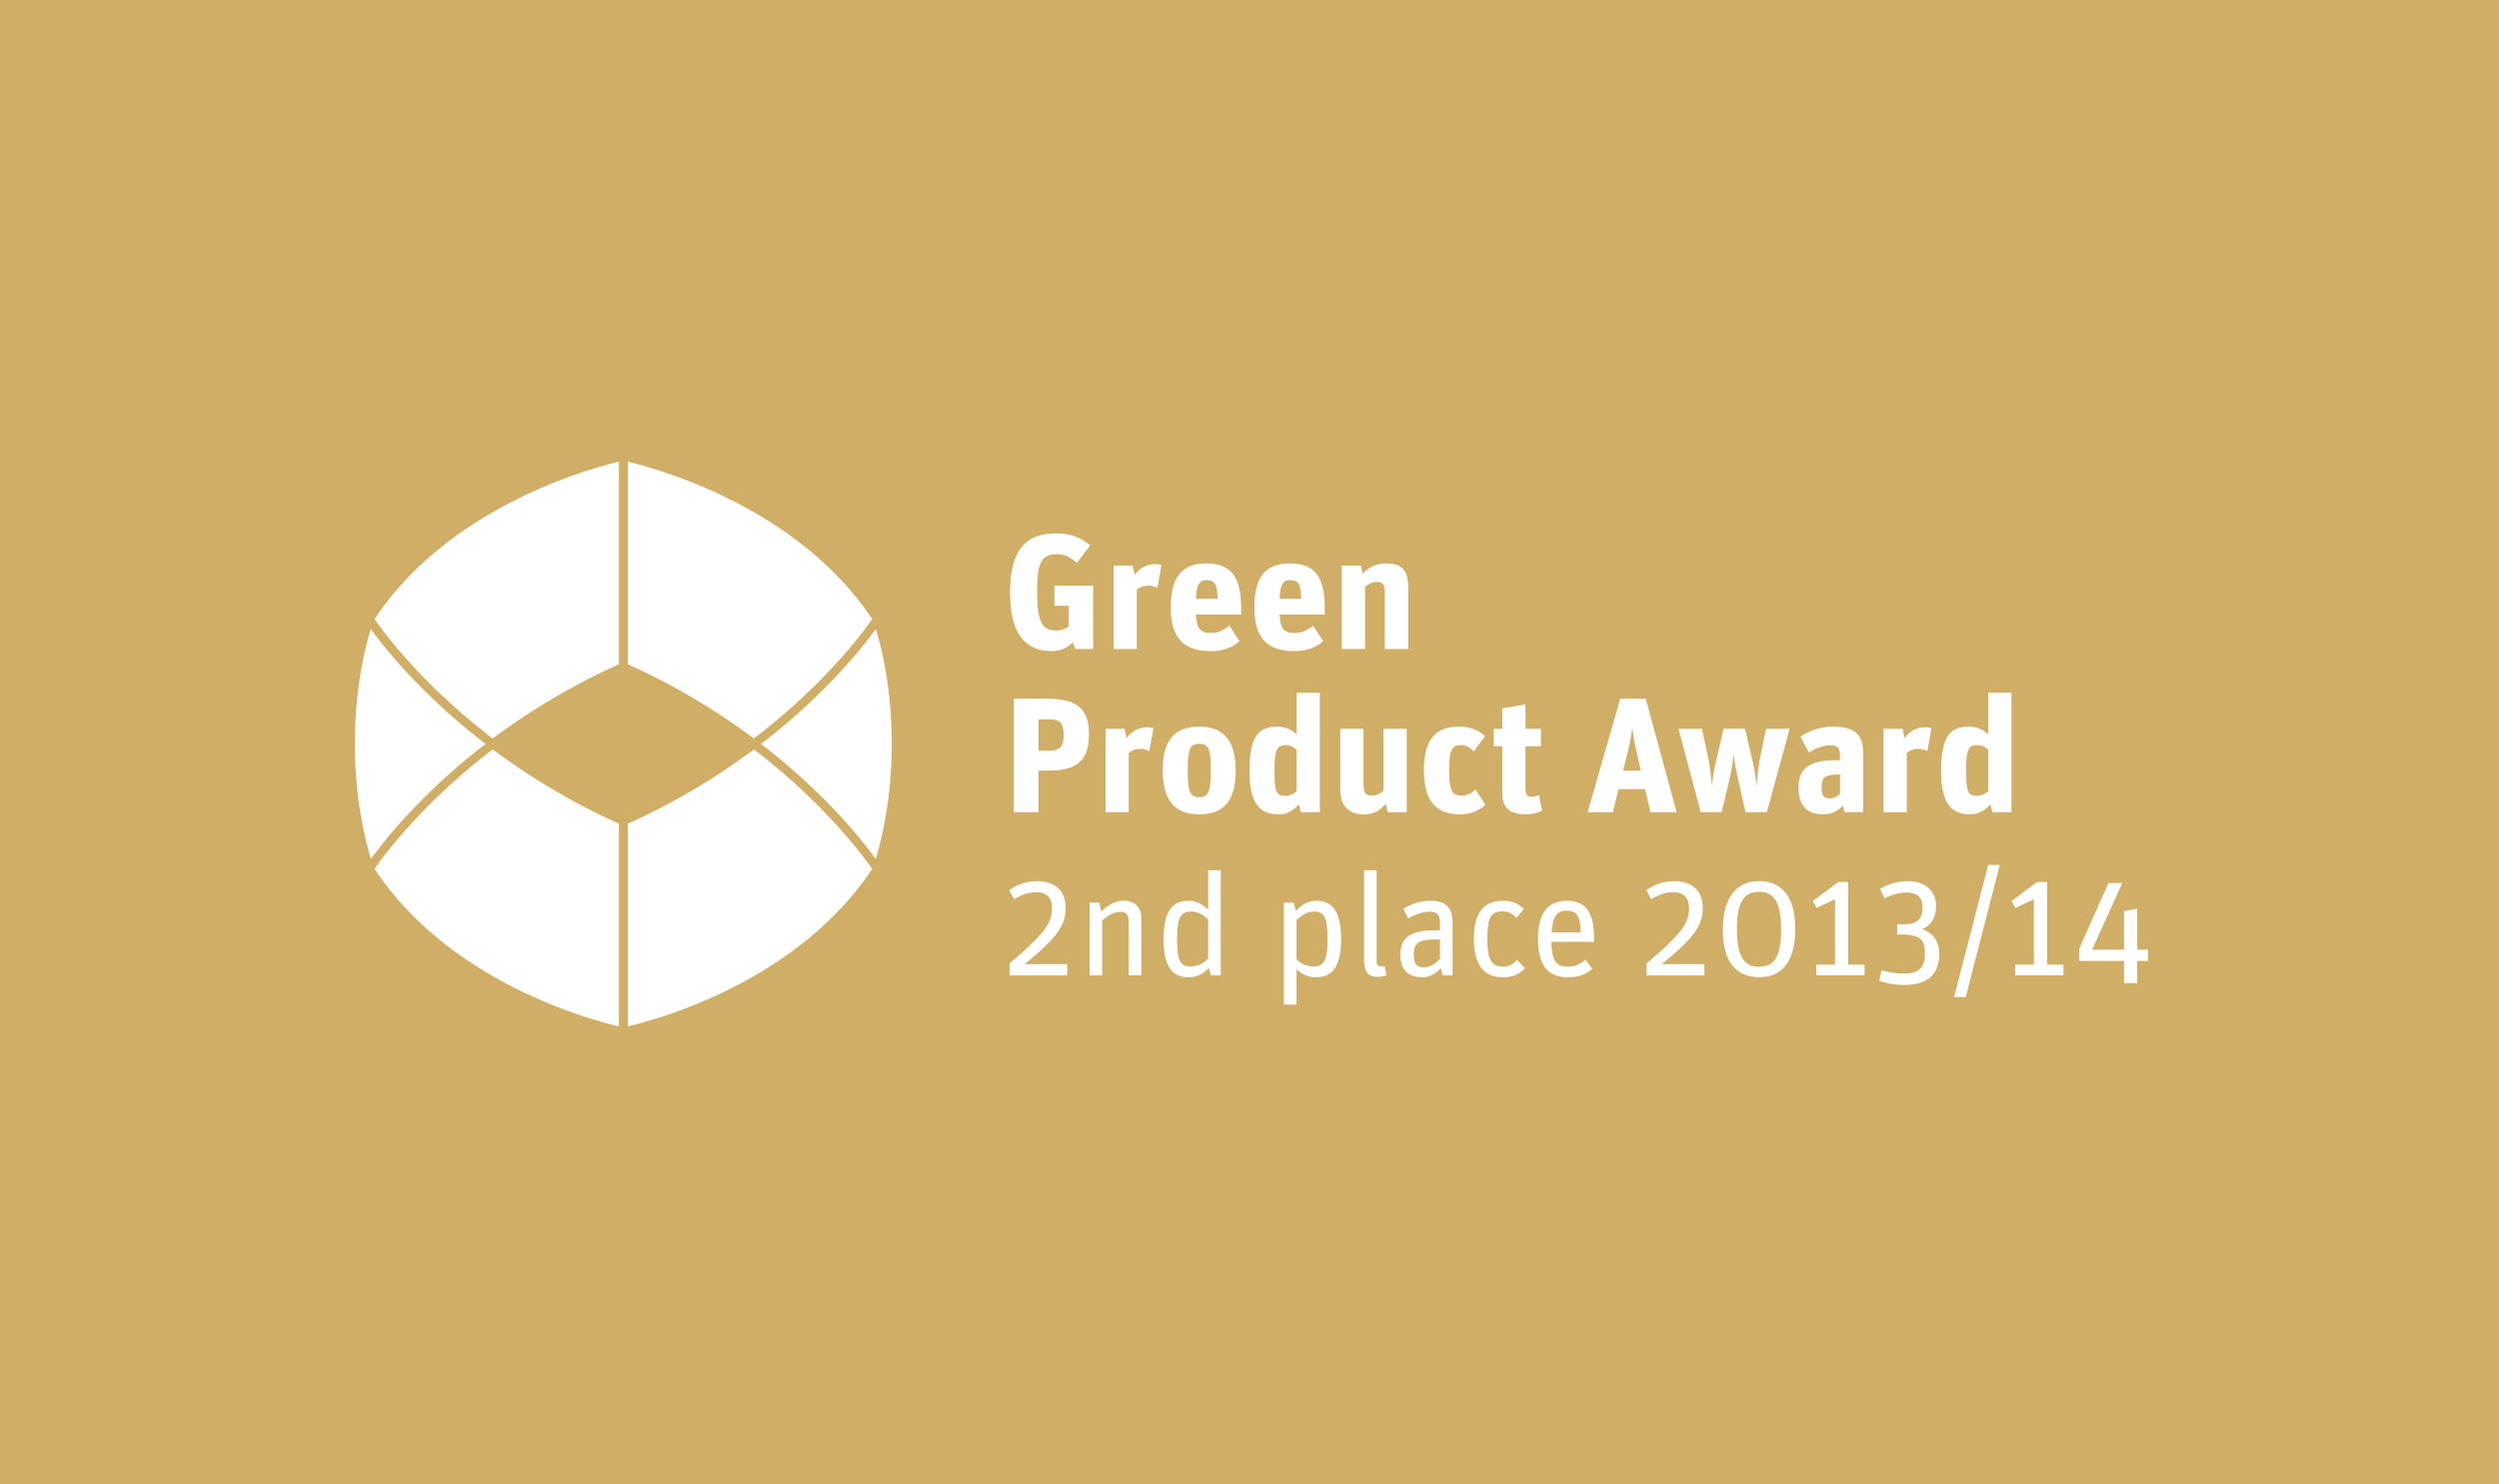 AWARD_Green-Product-Award_2013_2nd